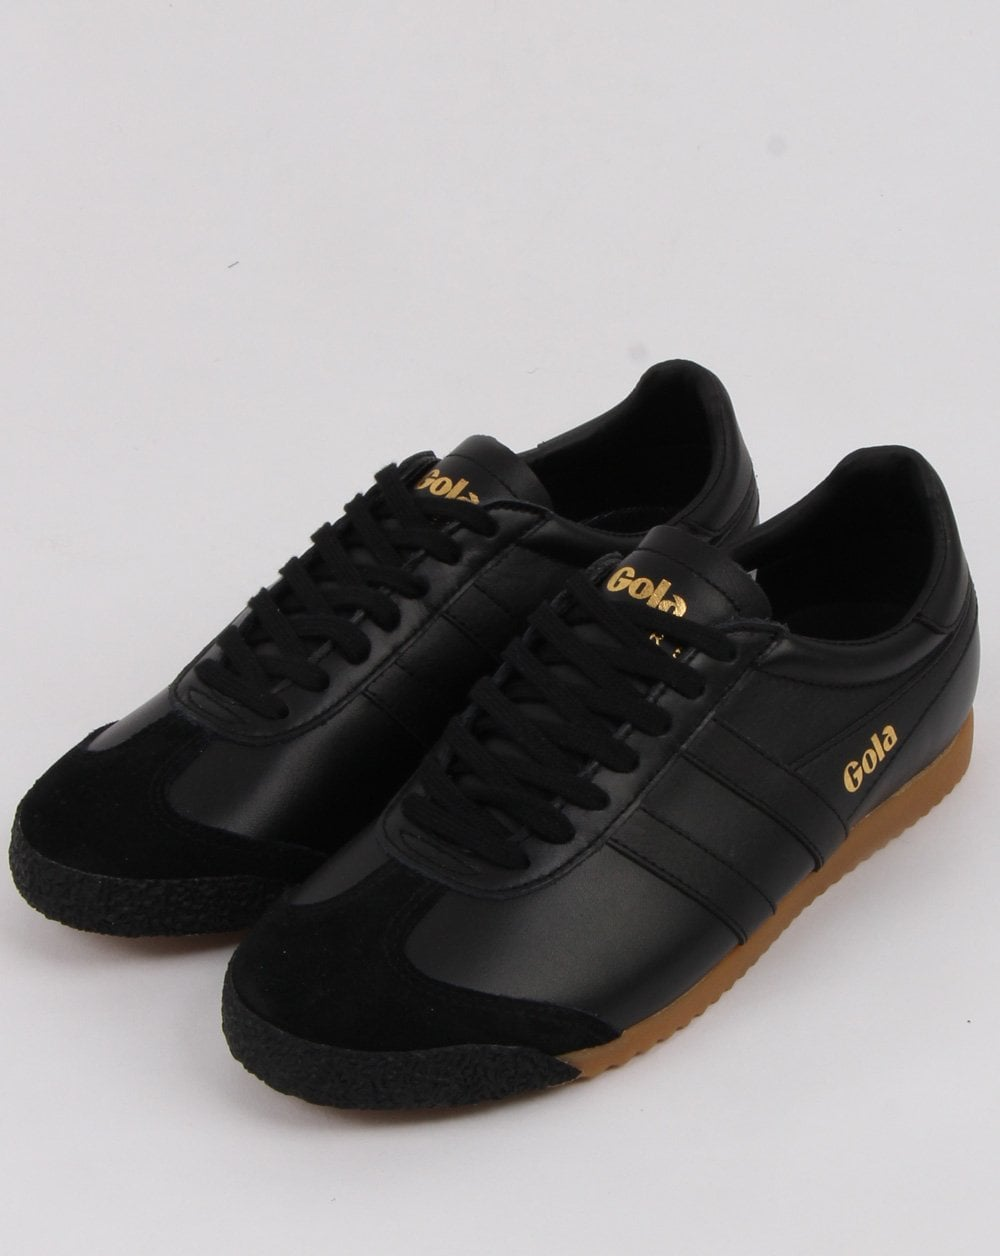 Gola Harrier 50 Leather Trainers in